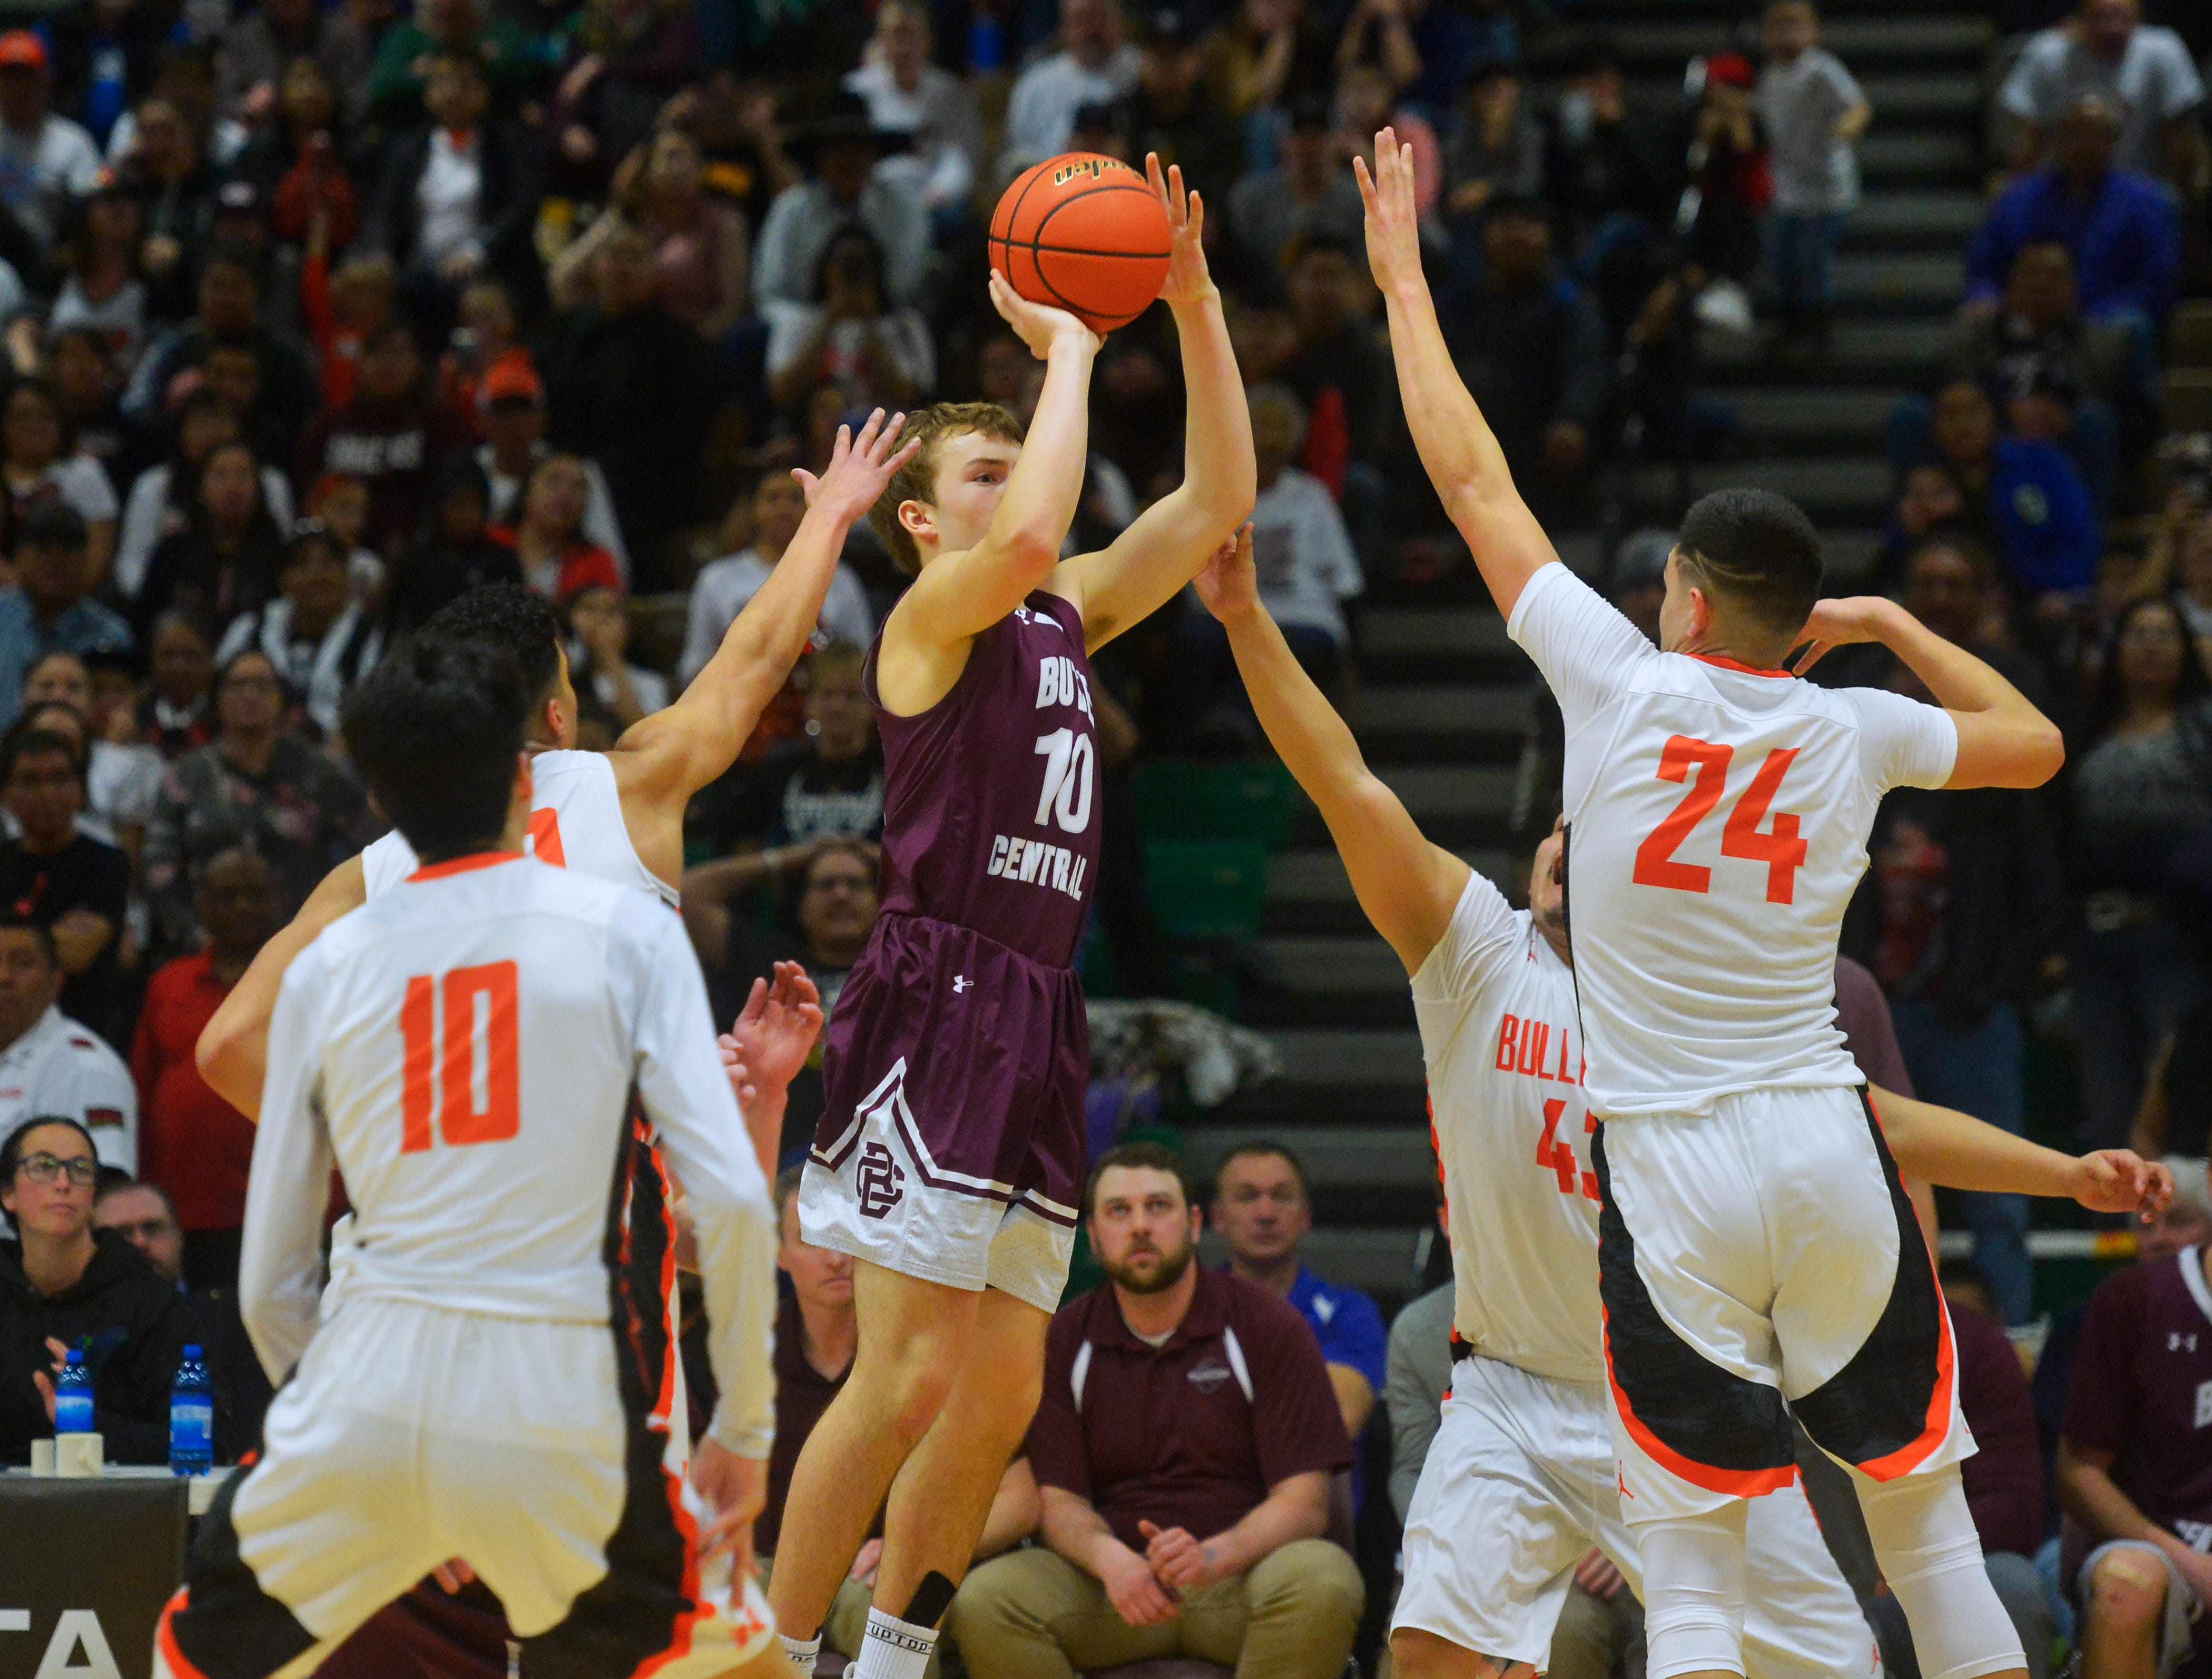 The Hardin and Butte Central boys play in the semifinal game of the State Class A Basketball Tournament in the Four Seasons Arena, Friday.